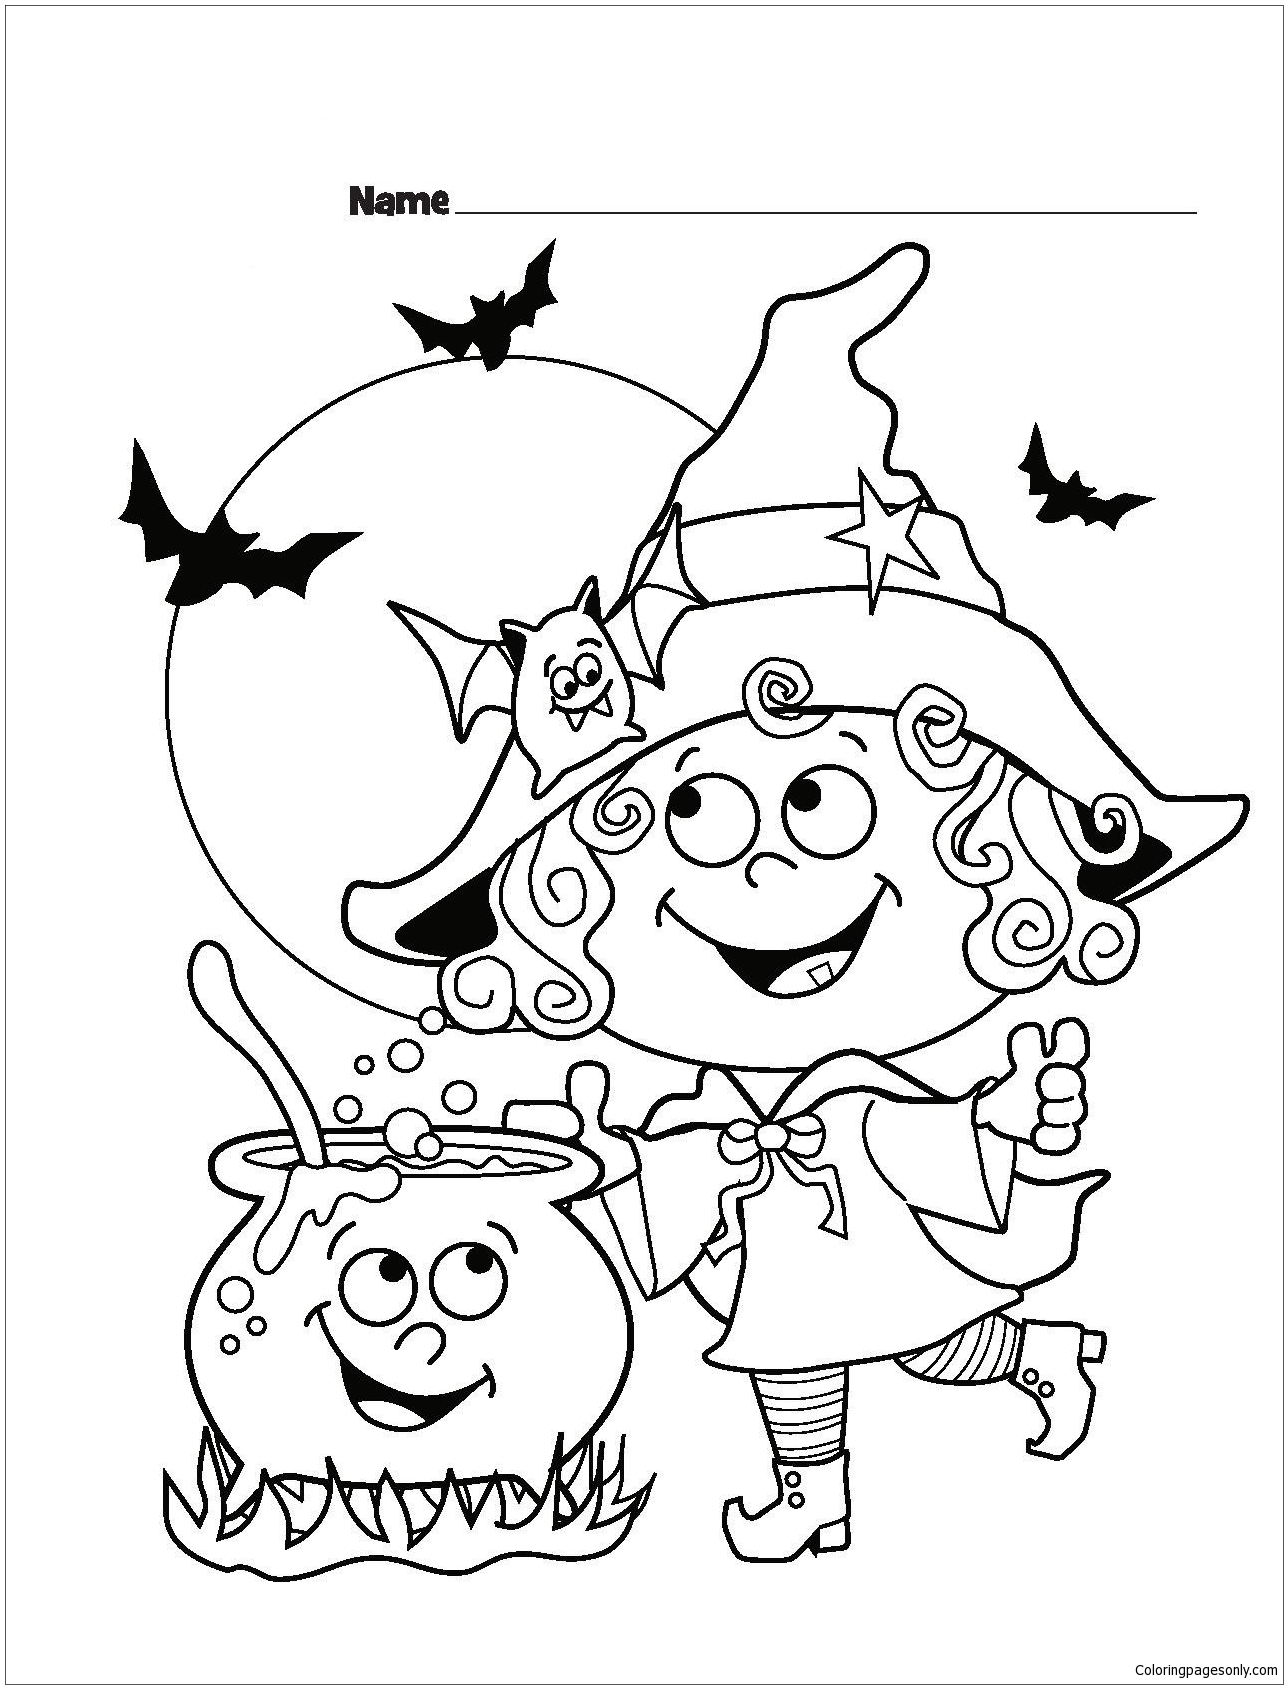 Cute Halloween Coloring Page - Free Coloring Pages Online